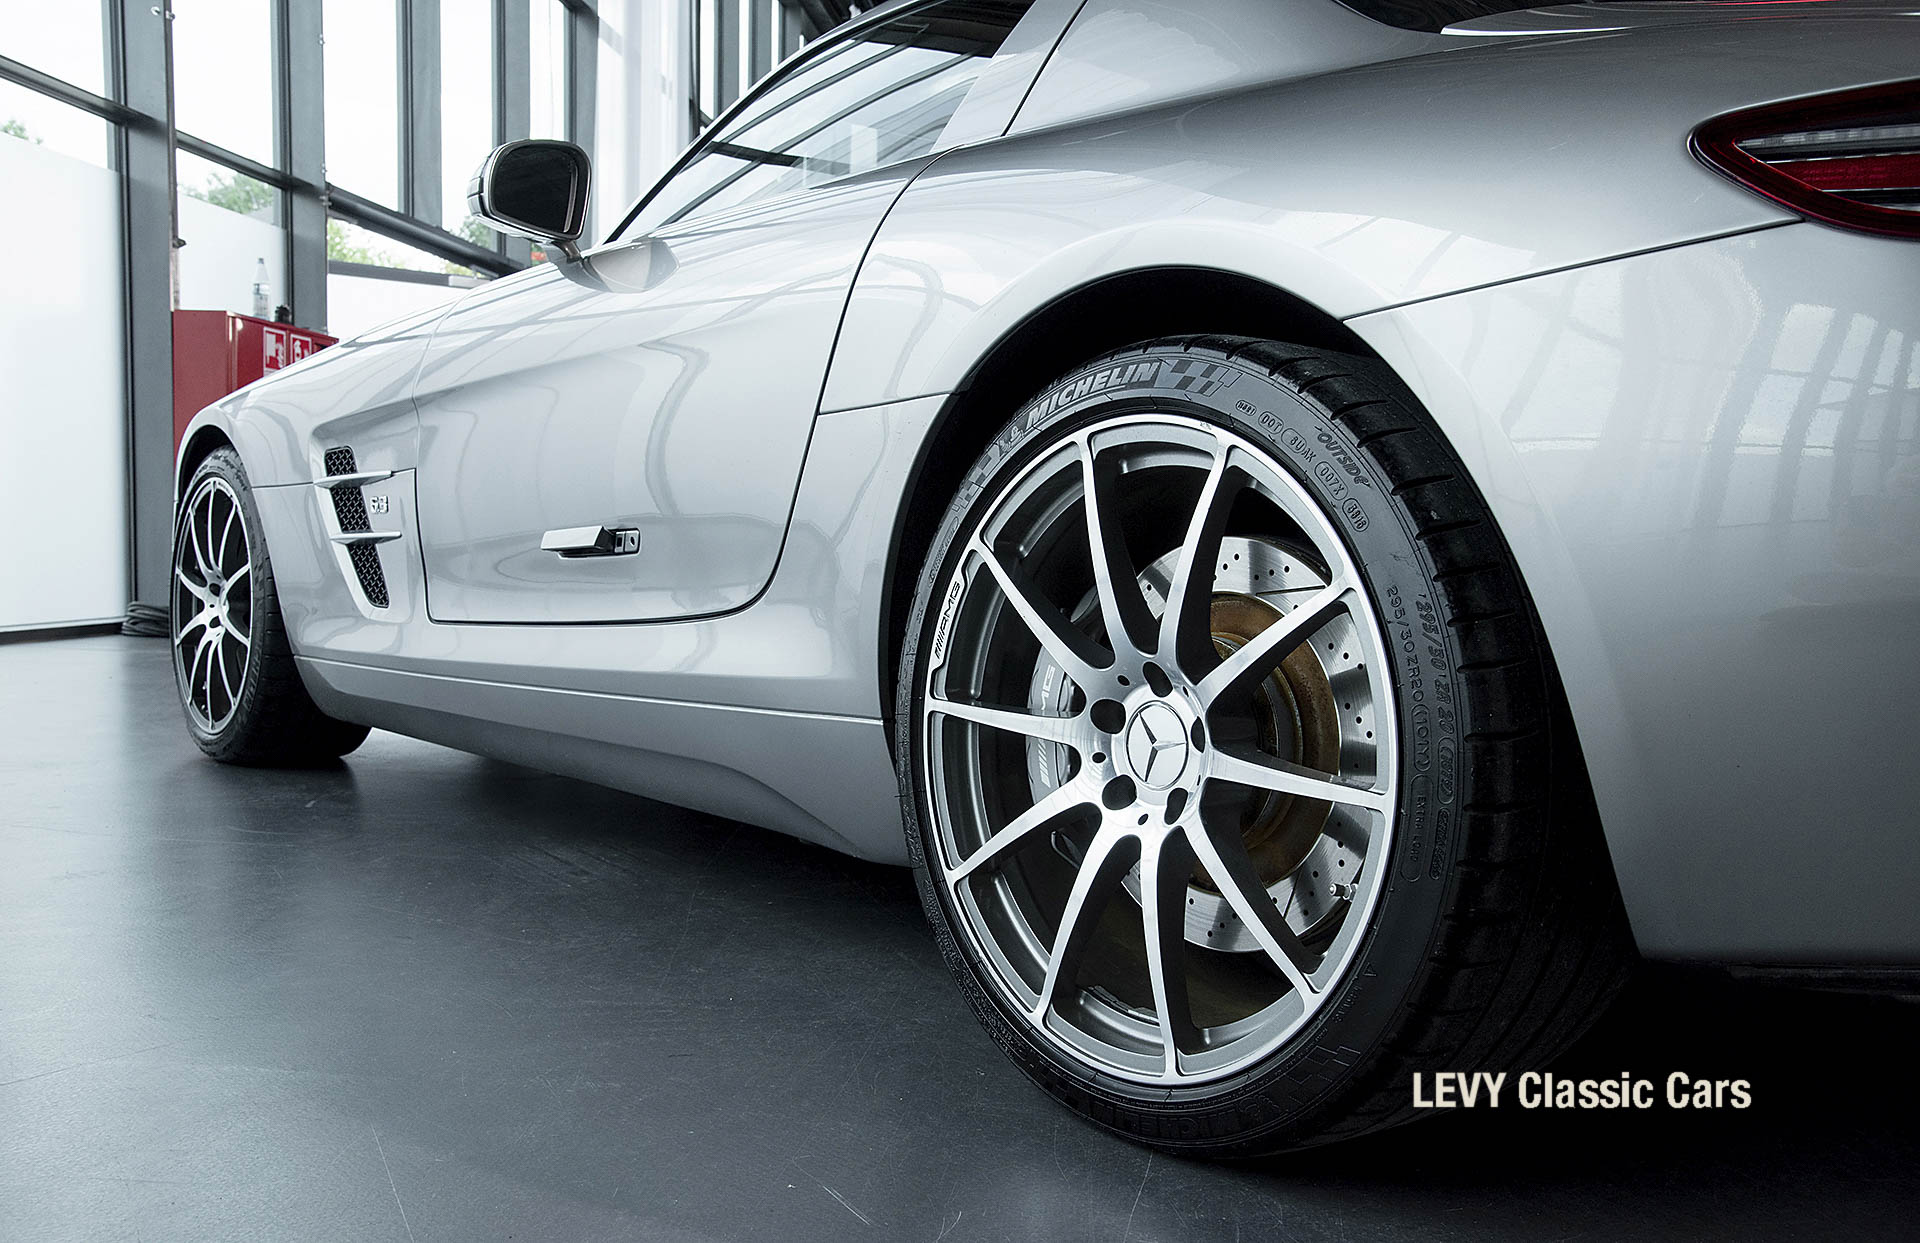 MB SLS AMG 6,3 Coupe 05633 029